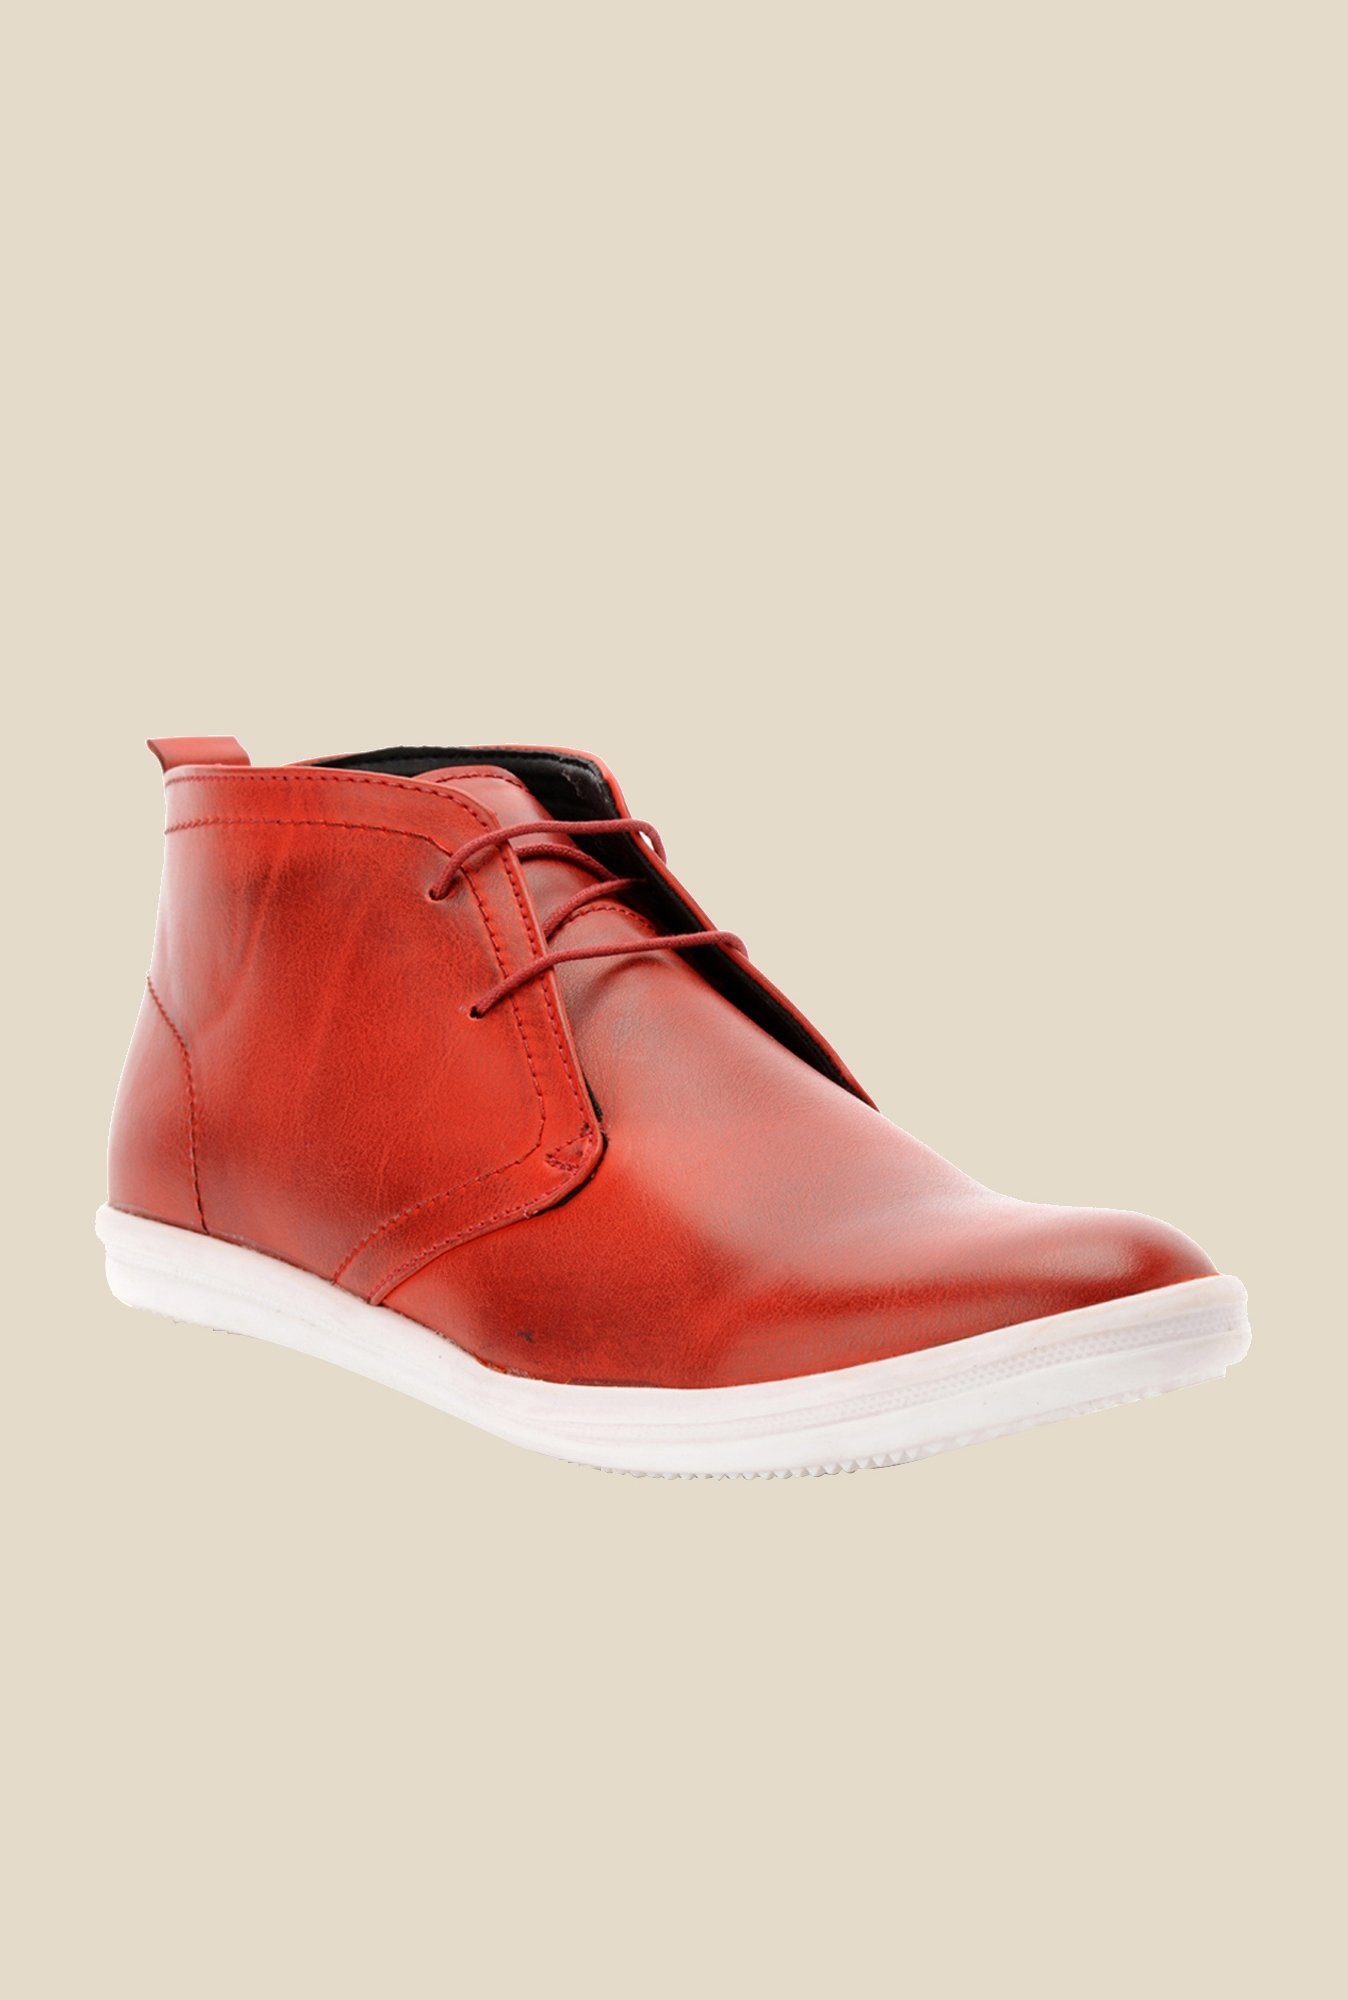 Bruno Manetti Red Chukka Shoes